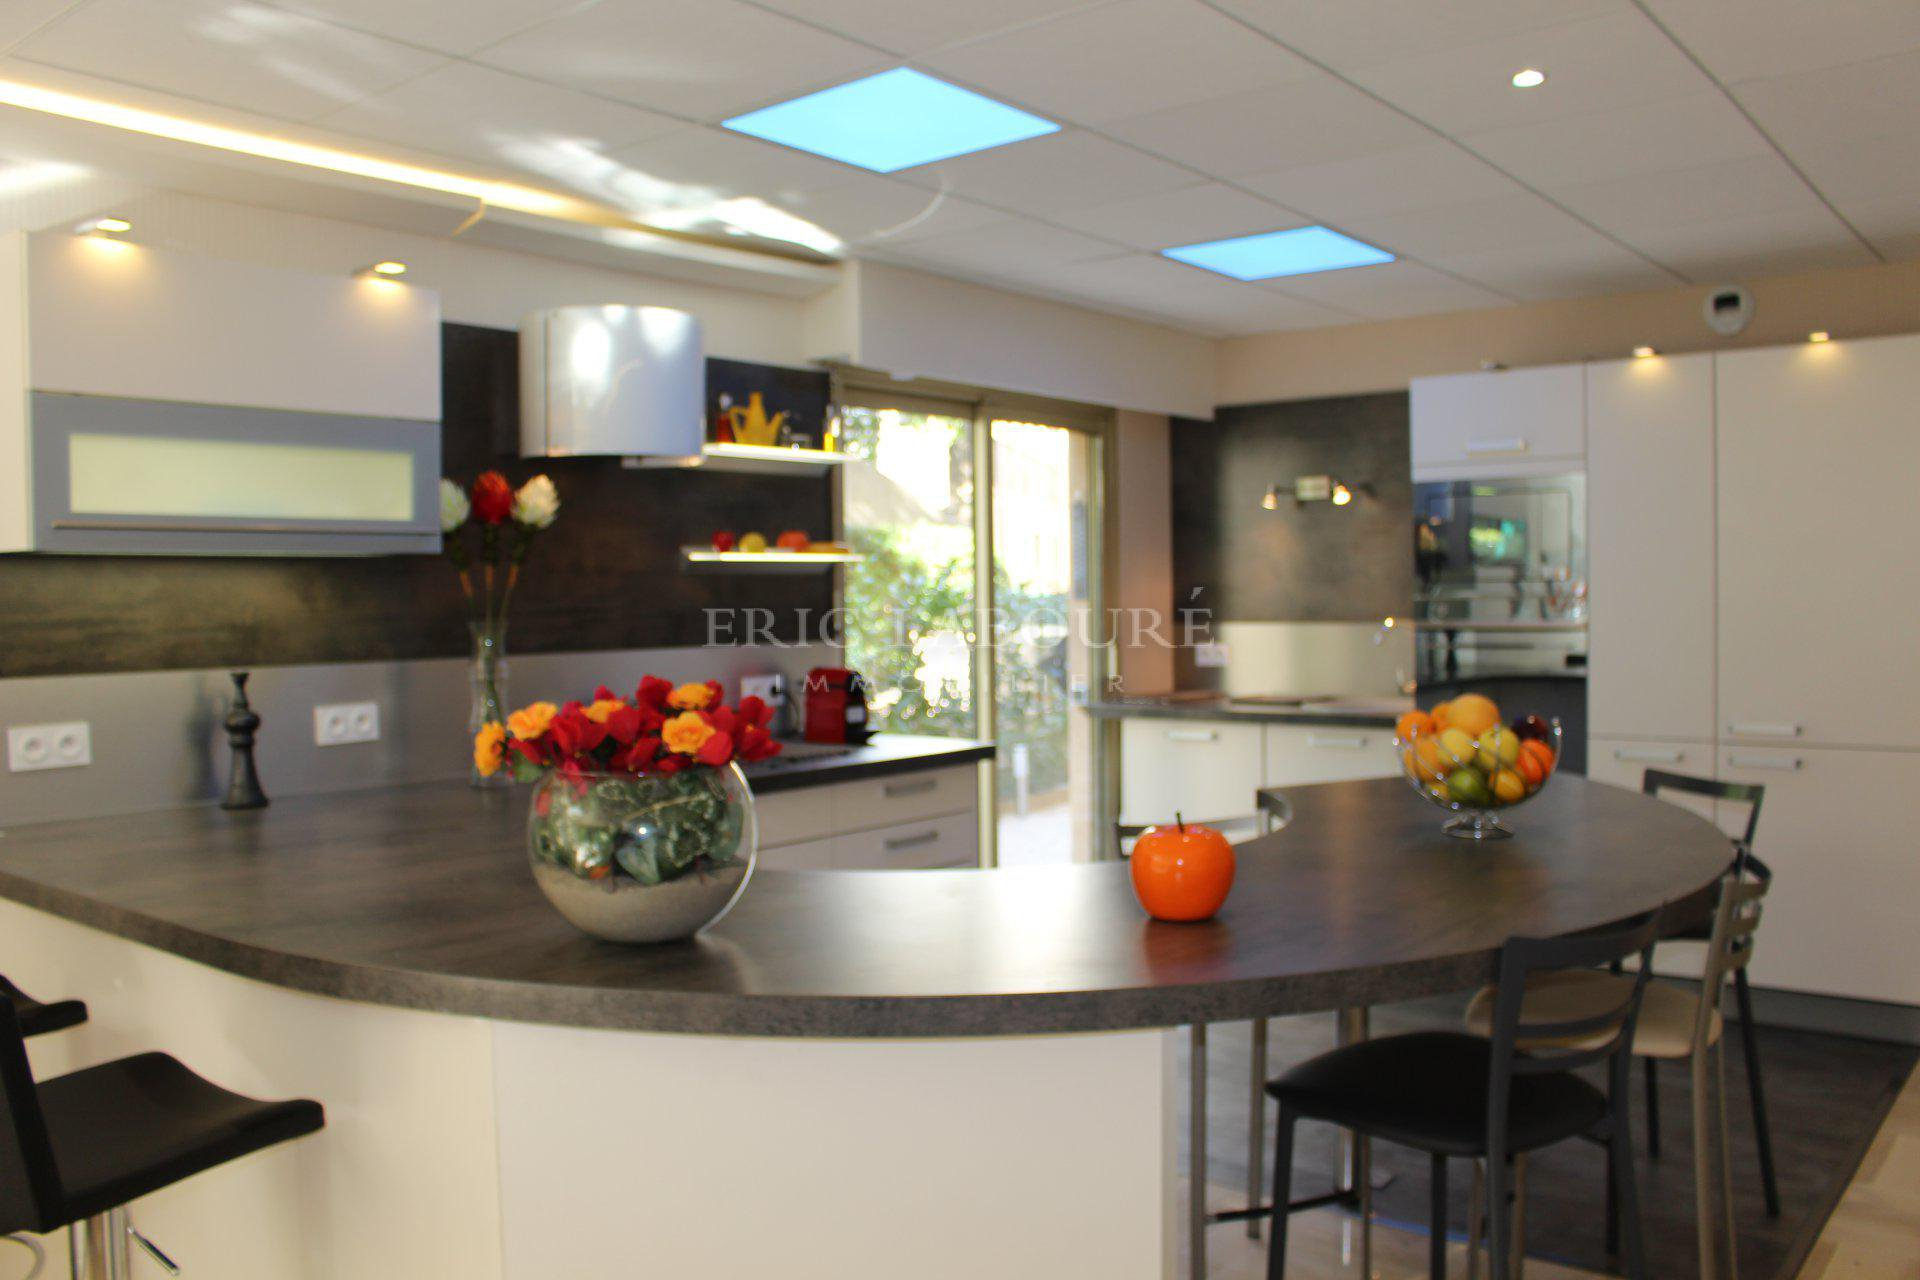 Skylight, natural light, kitchen bar, kitchen island